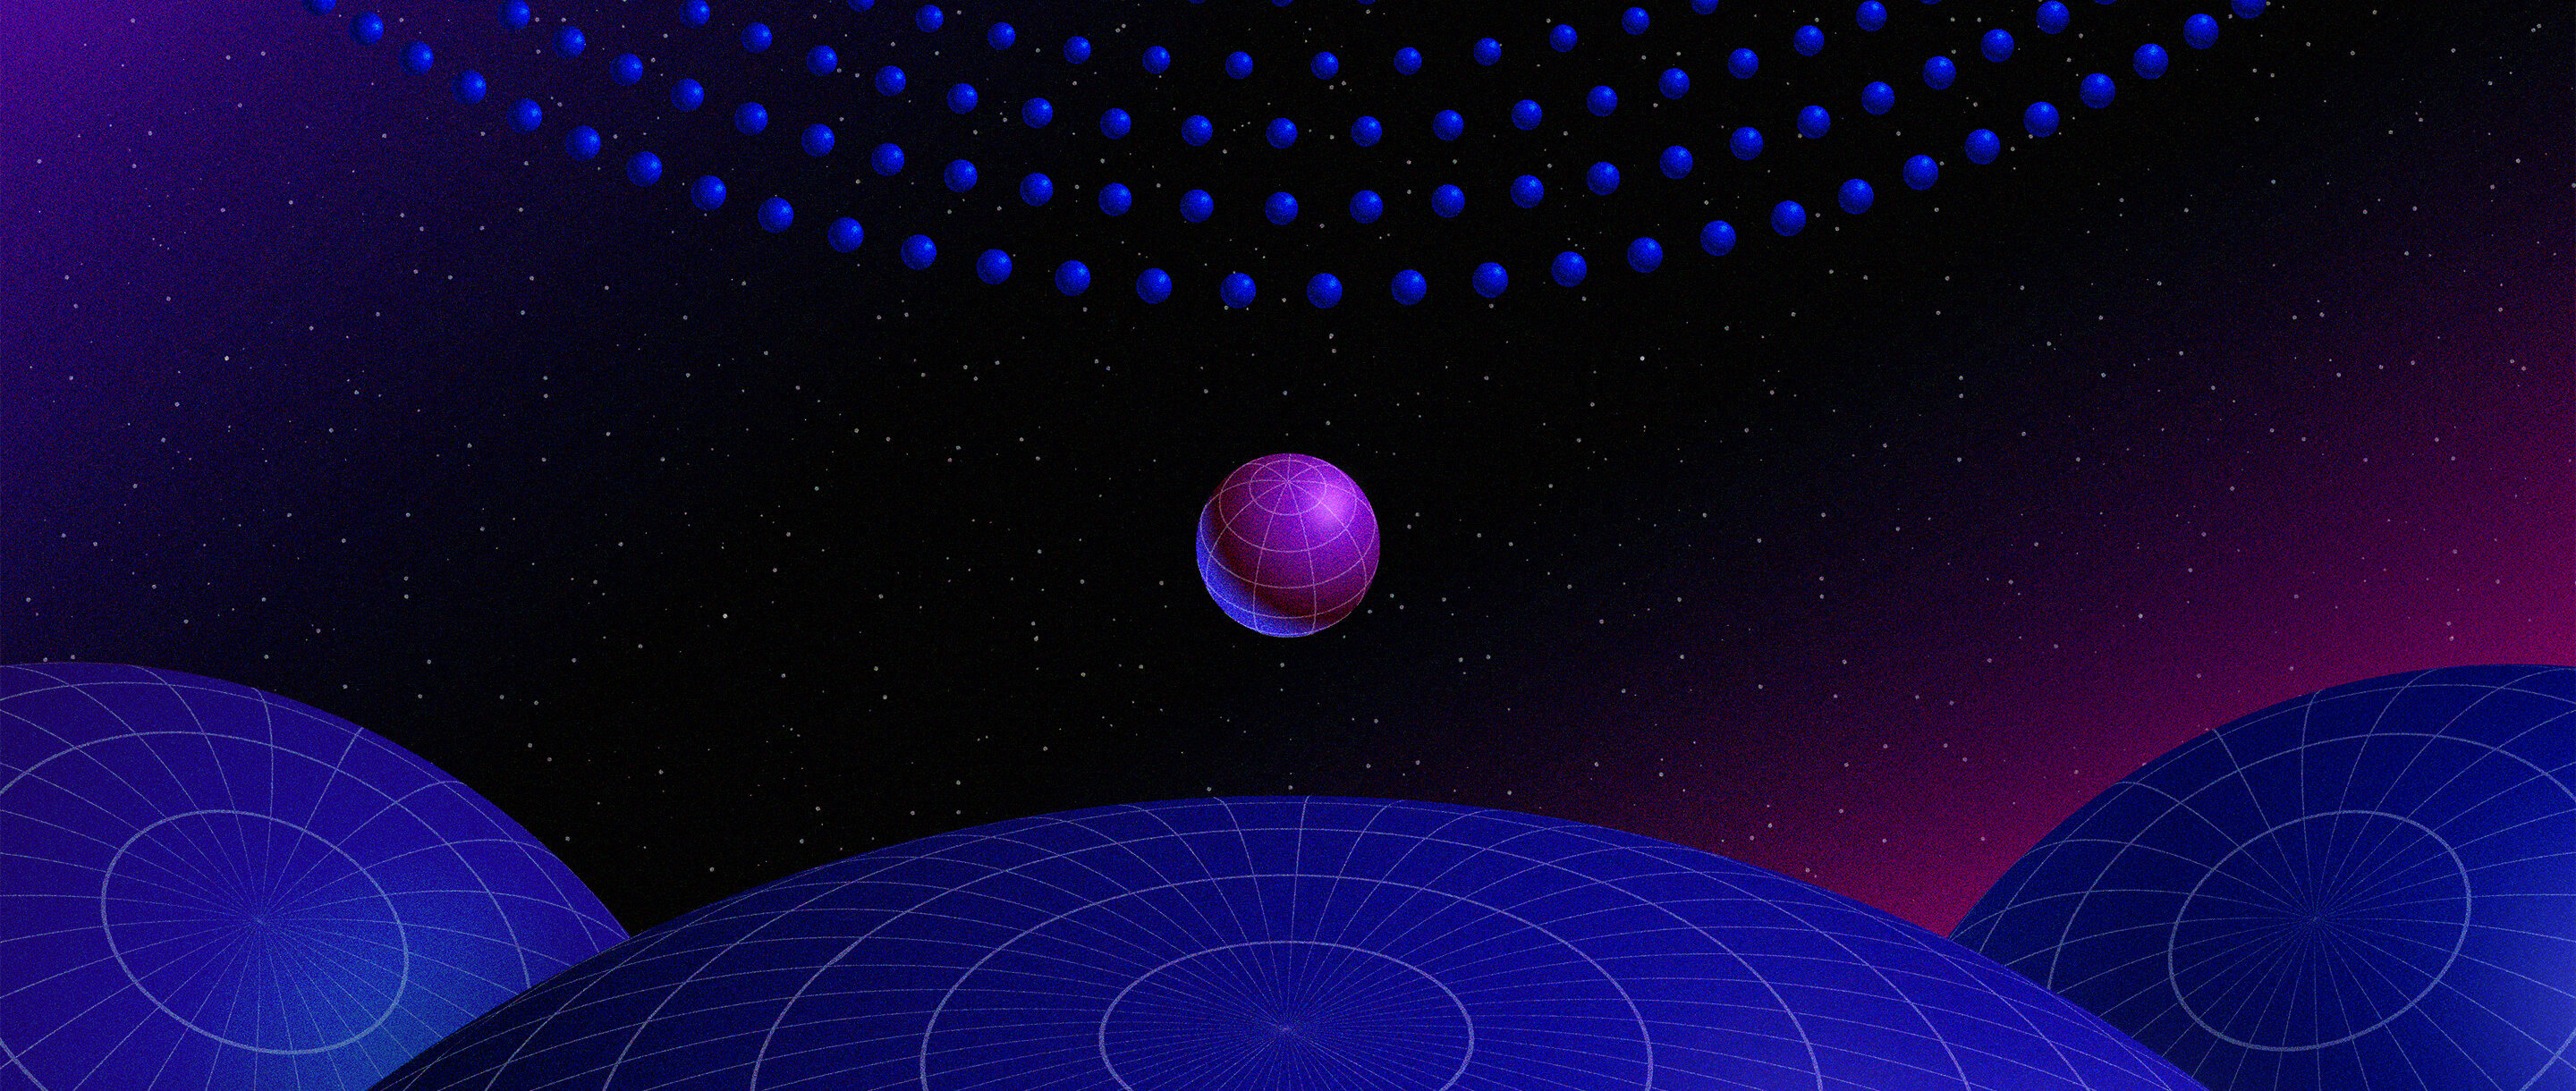 Spheres representing black holes, with small ones on top, large ones on the bottom, and one midsize example in the middle.